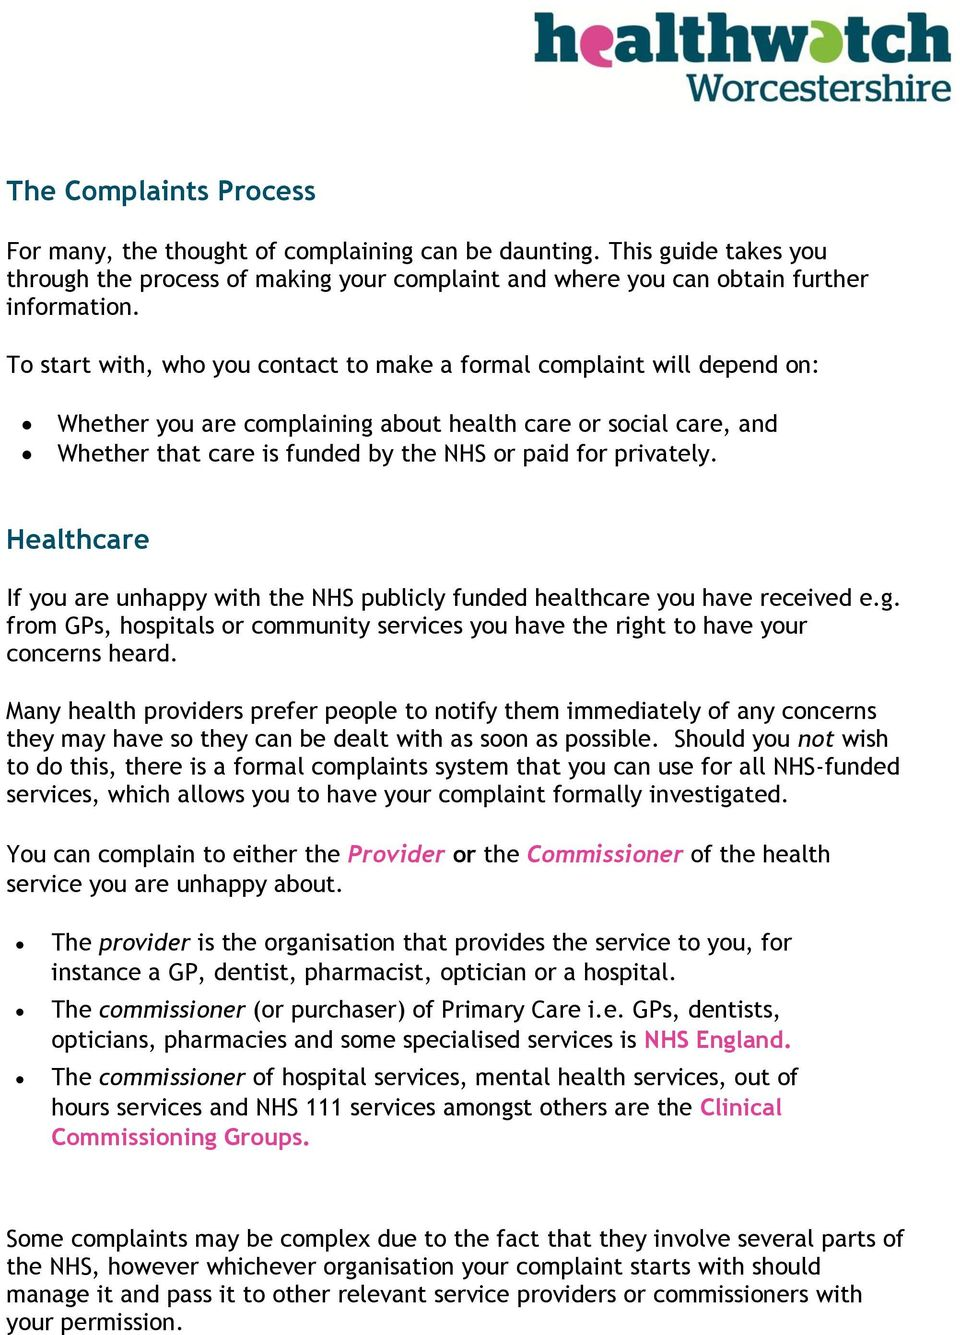 privately. Healthcare If you are unhappy with the NHS publicly funded healthcare you have received e.g. from GPs, hospitals or community services you have the right to have your concerns heard.